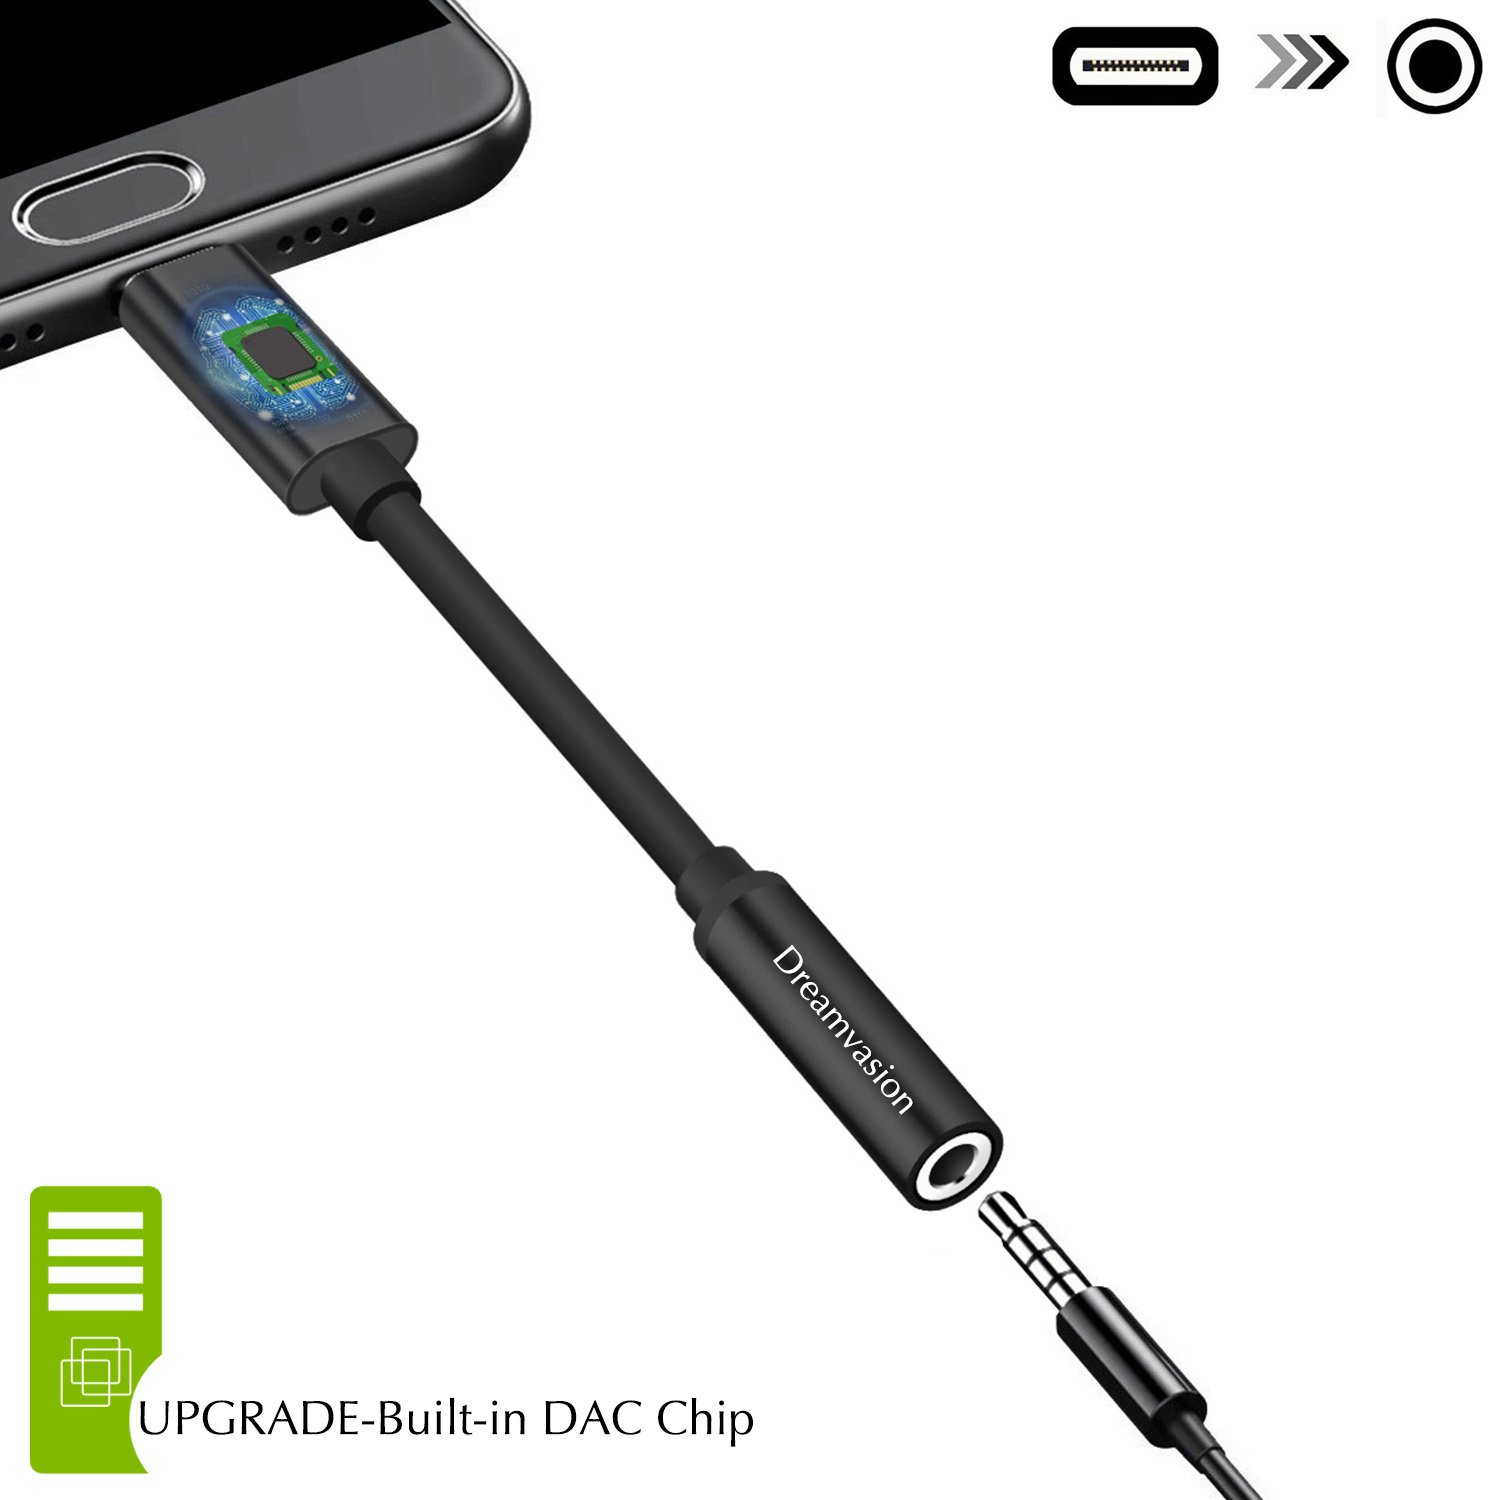 Goolge Pixel Audio Adapter, Dreamvasion USB Type C to 3.5mm Headphone Audio Jack Adapter Cable with DAC/Hi-Res for Google Pixel 2 XL, HTC, Huawei, Moto Z, Essential Ph-1, MacBook, More USB C Devices